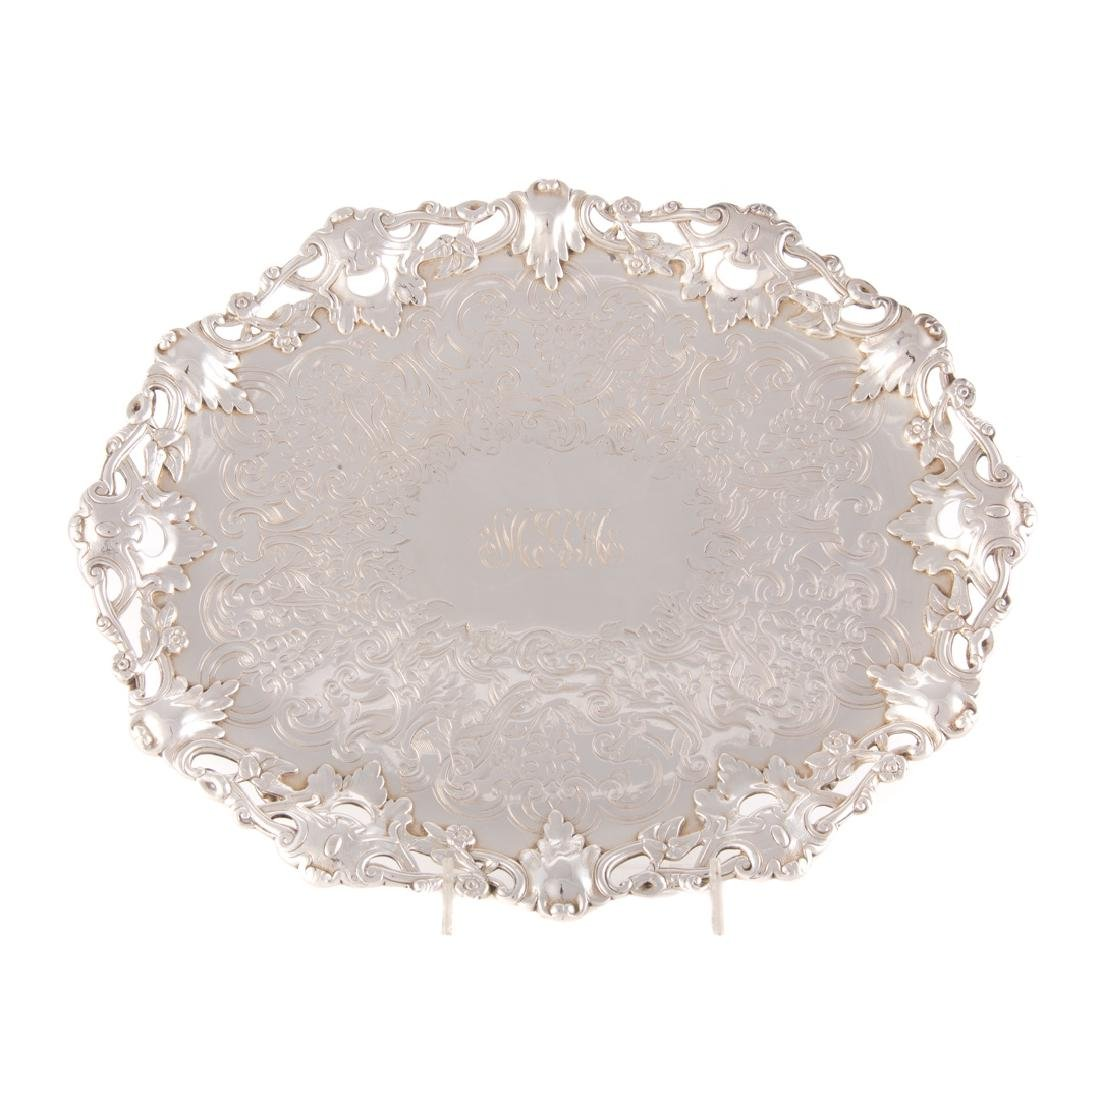 Ball, Black & Co. sterling footed platter